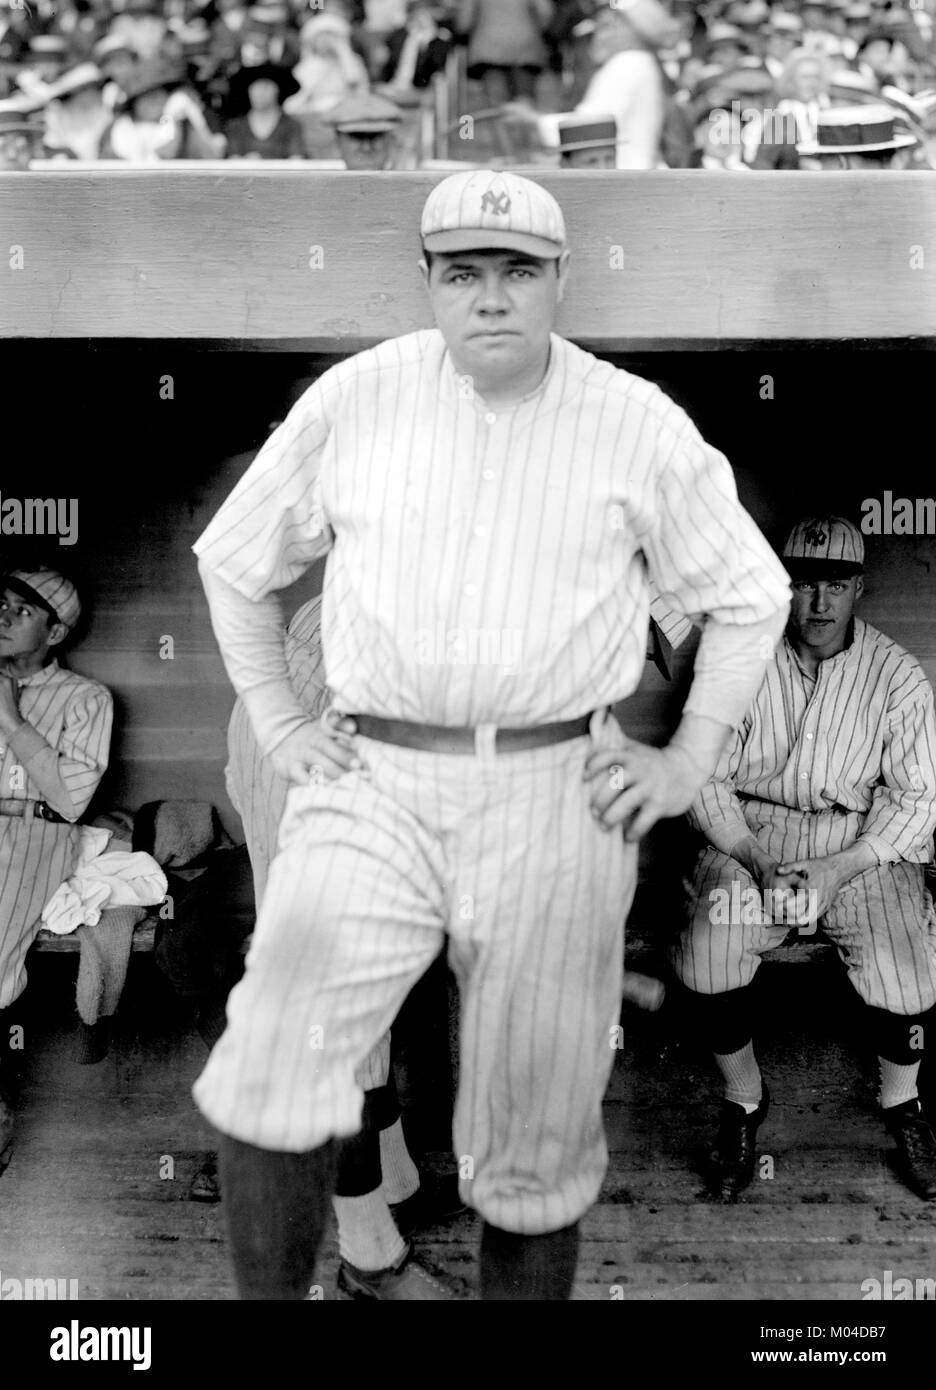 Babe Ruth. The American baseball player George Herman 'Babe' Ruth Jr. (1895-1948), playing for the New York - Stock Image